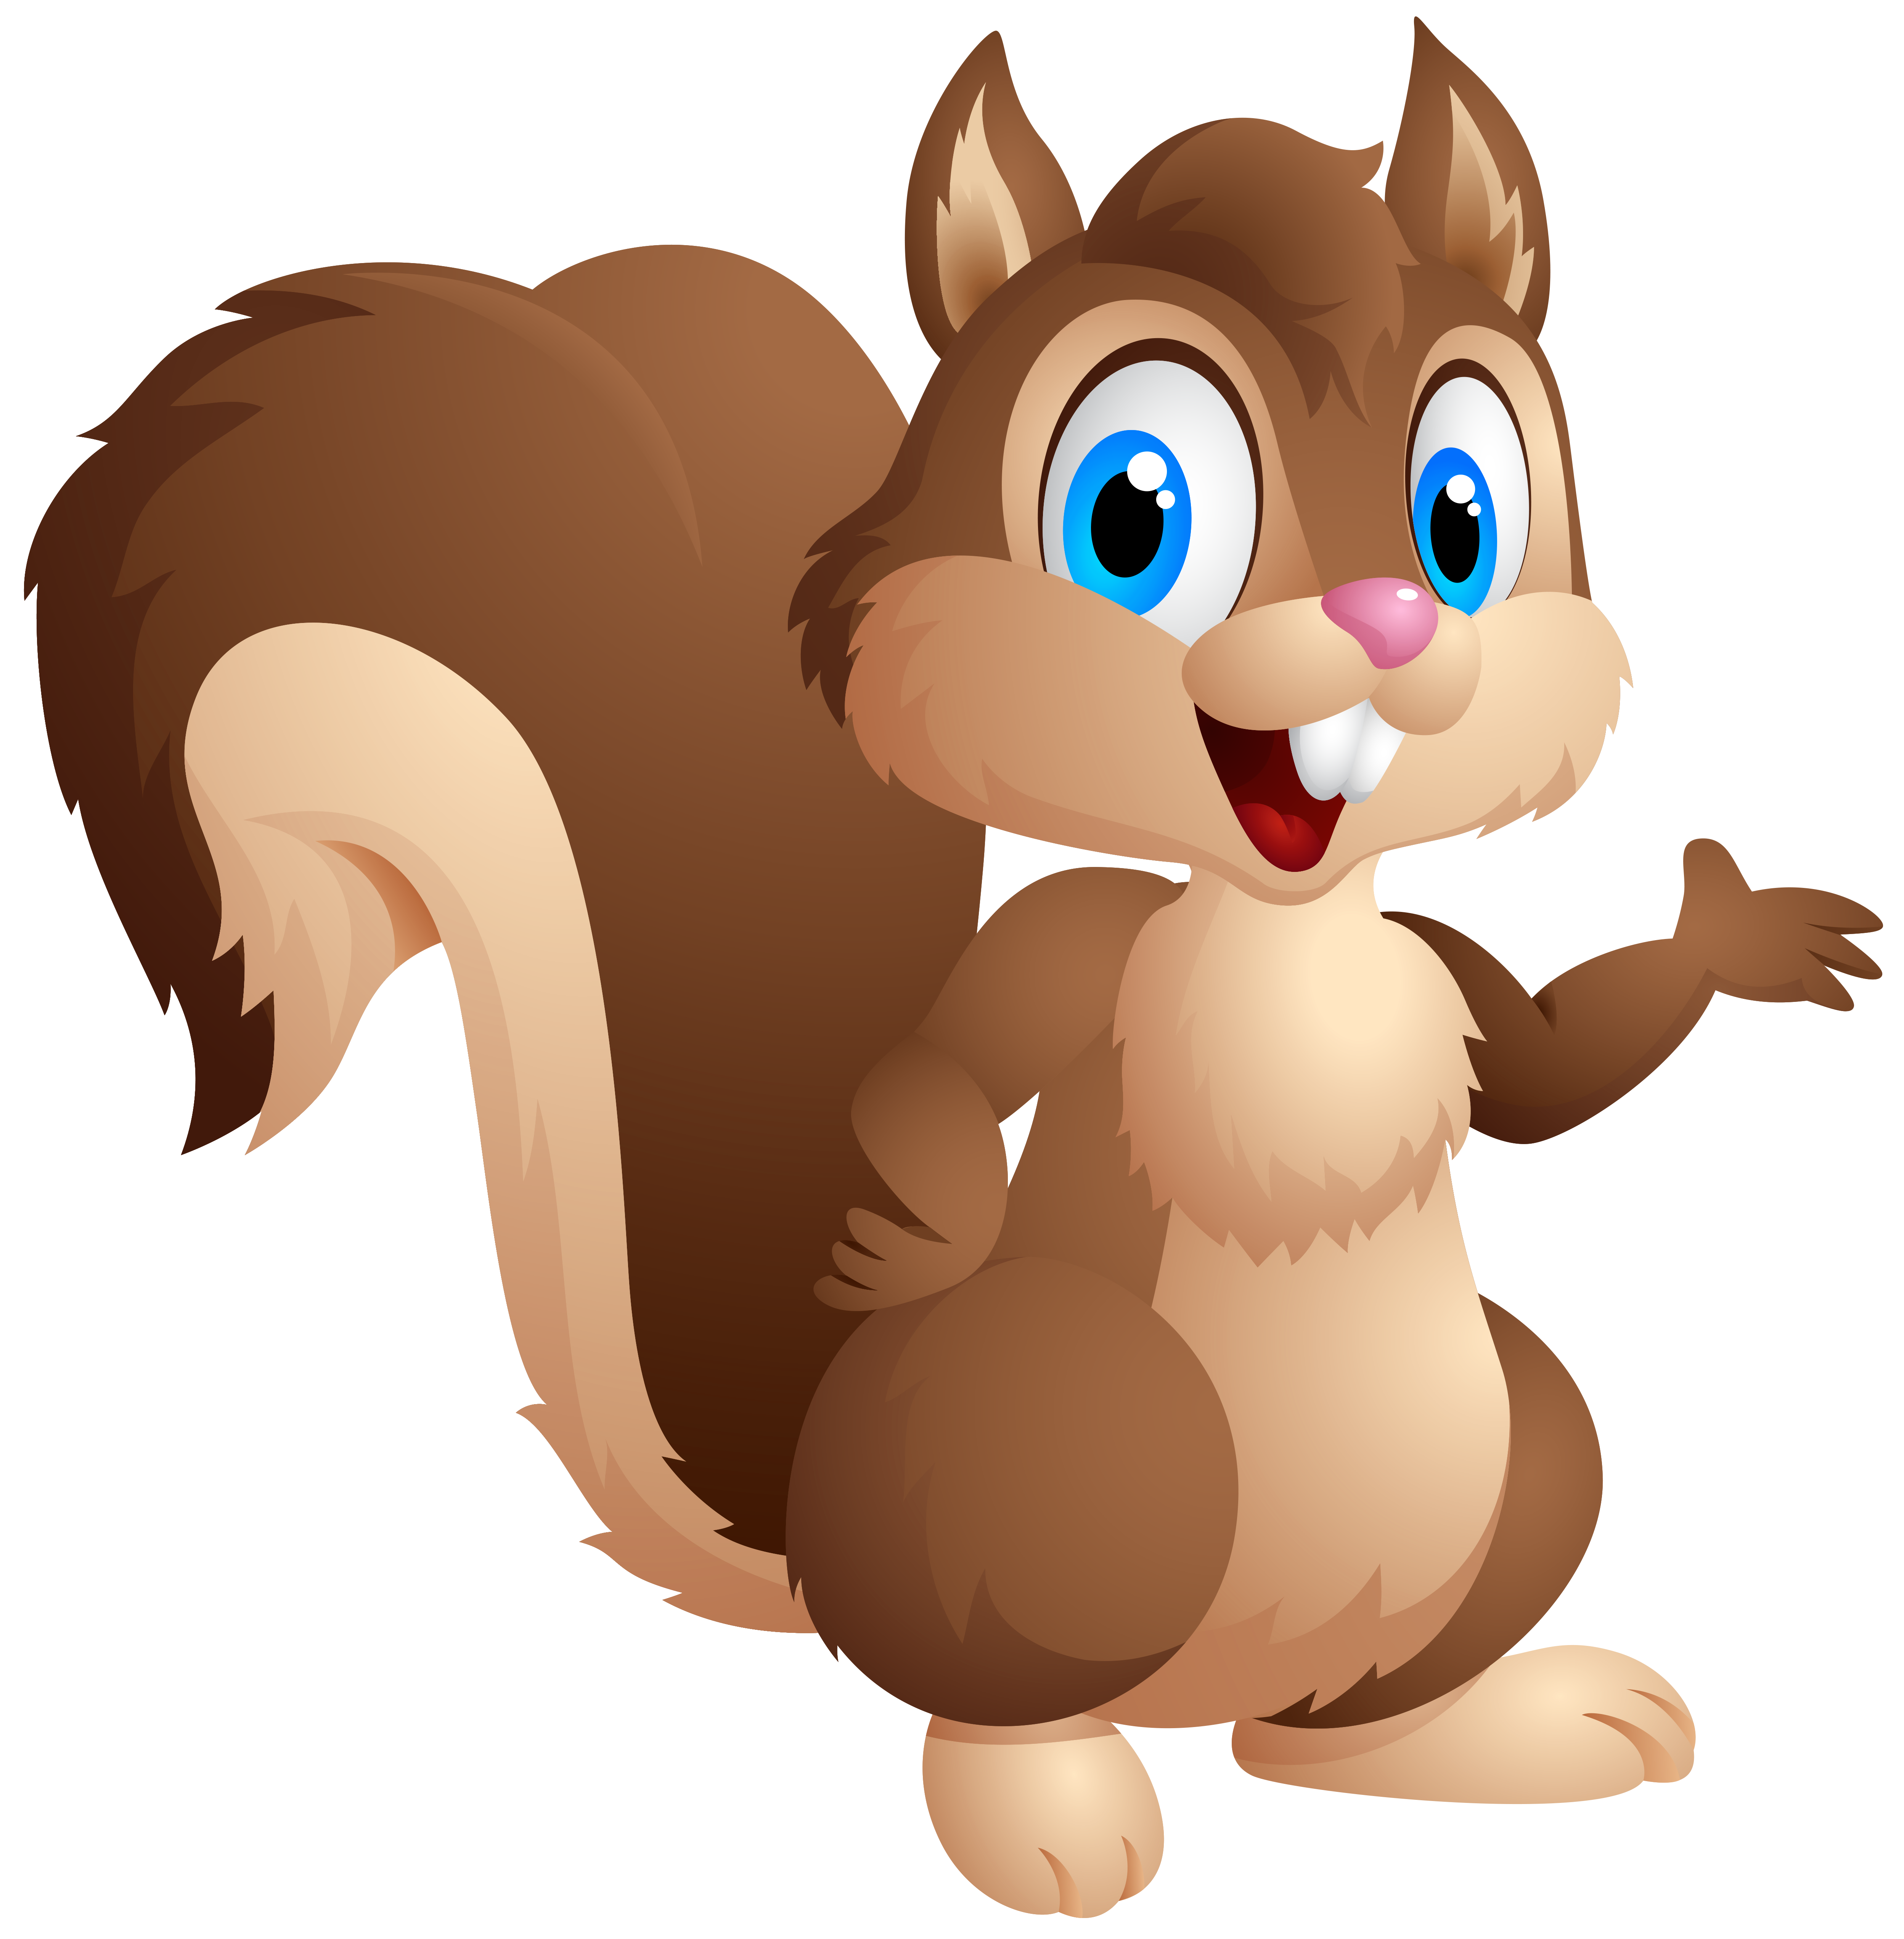 Free chipmunk pinterest. Squirrel clipart squirrel drawing svg library library